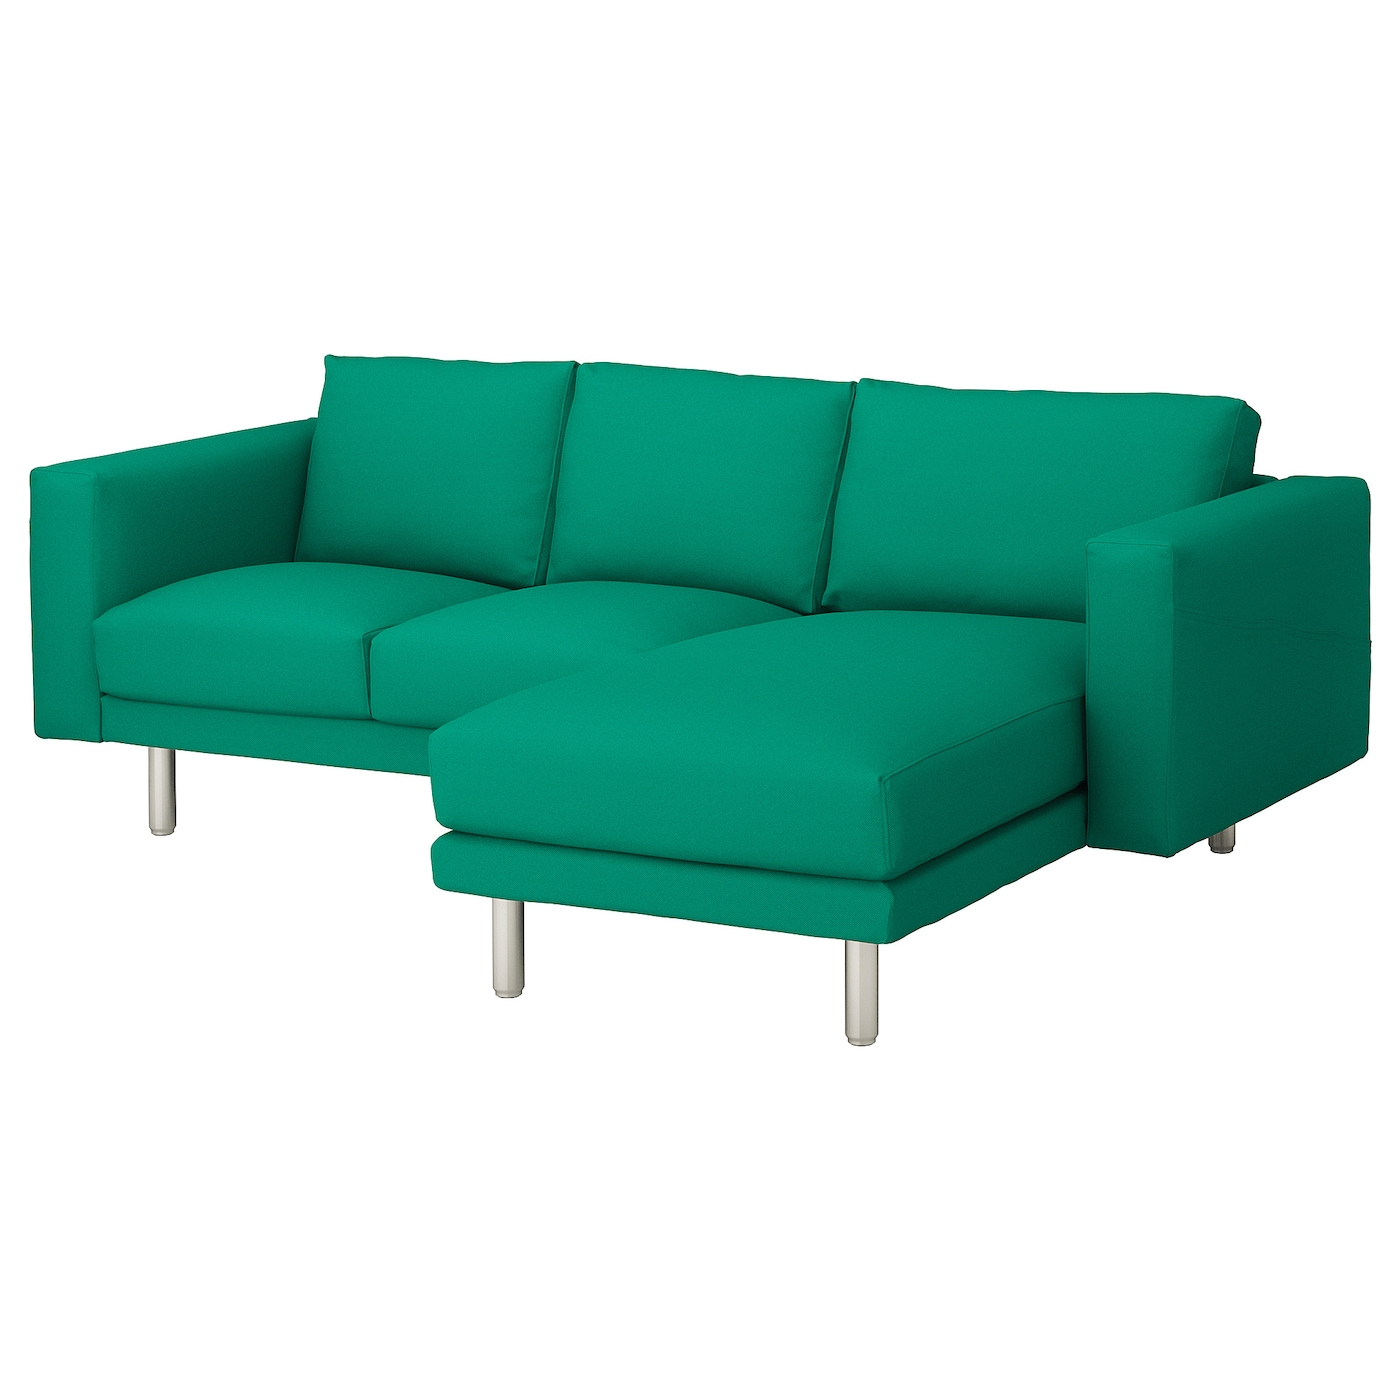 Fabric sofas ikea ireland dublin for Chaise longue bank